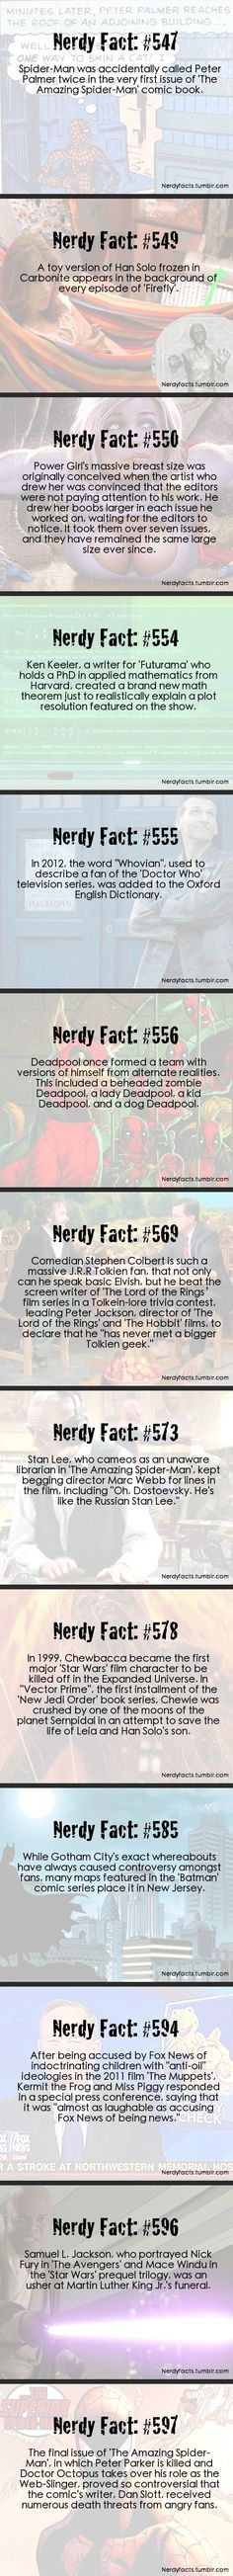 Nerd Facts--- funny i JUST started reading Spiderman comics and I can tell you the first one is absofreakinlytely true. BUT THE LAST ONE IS A SPOILER A SPOILER A SPOILER I TELL YOU